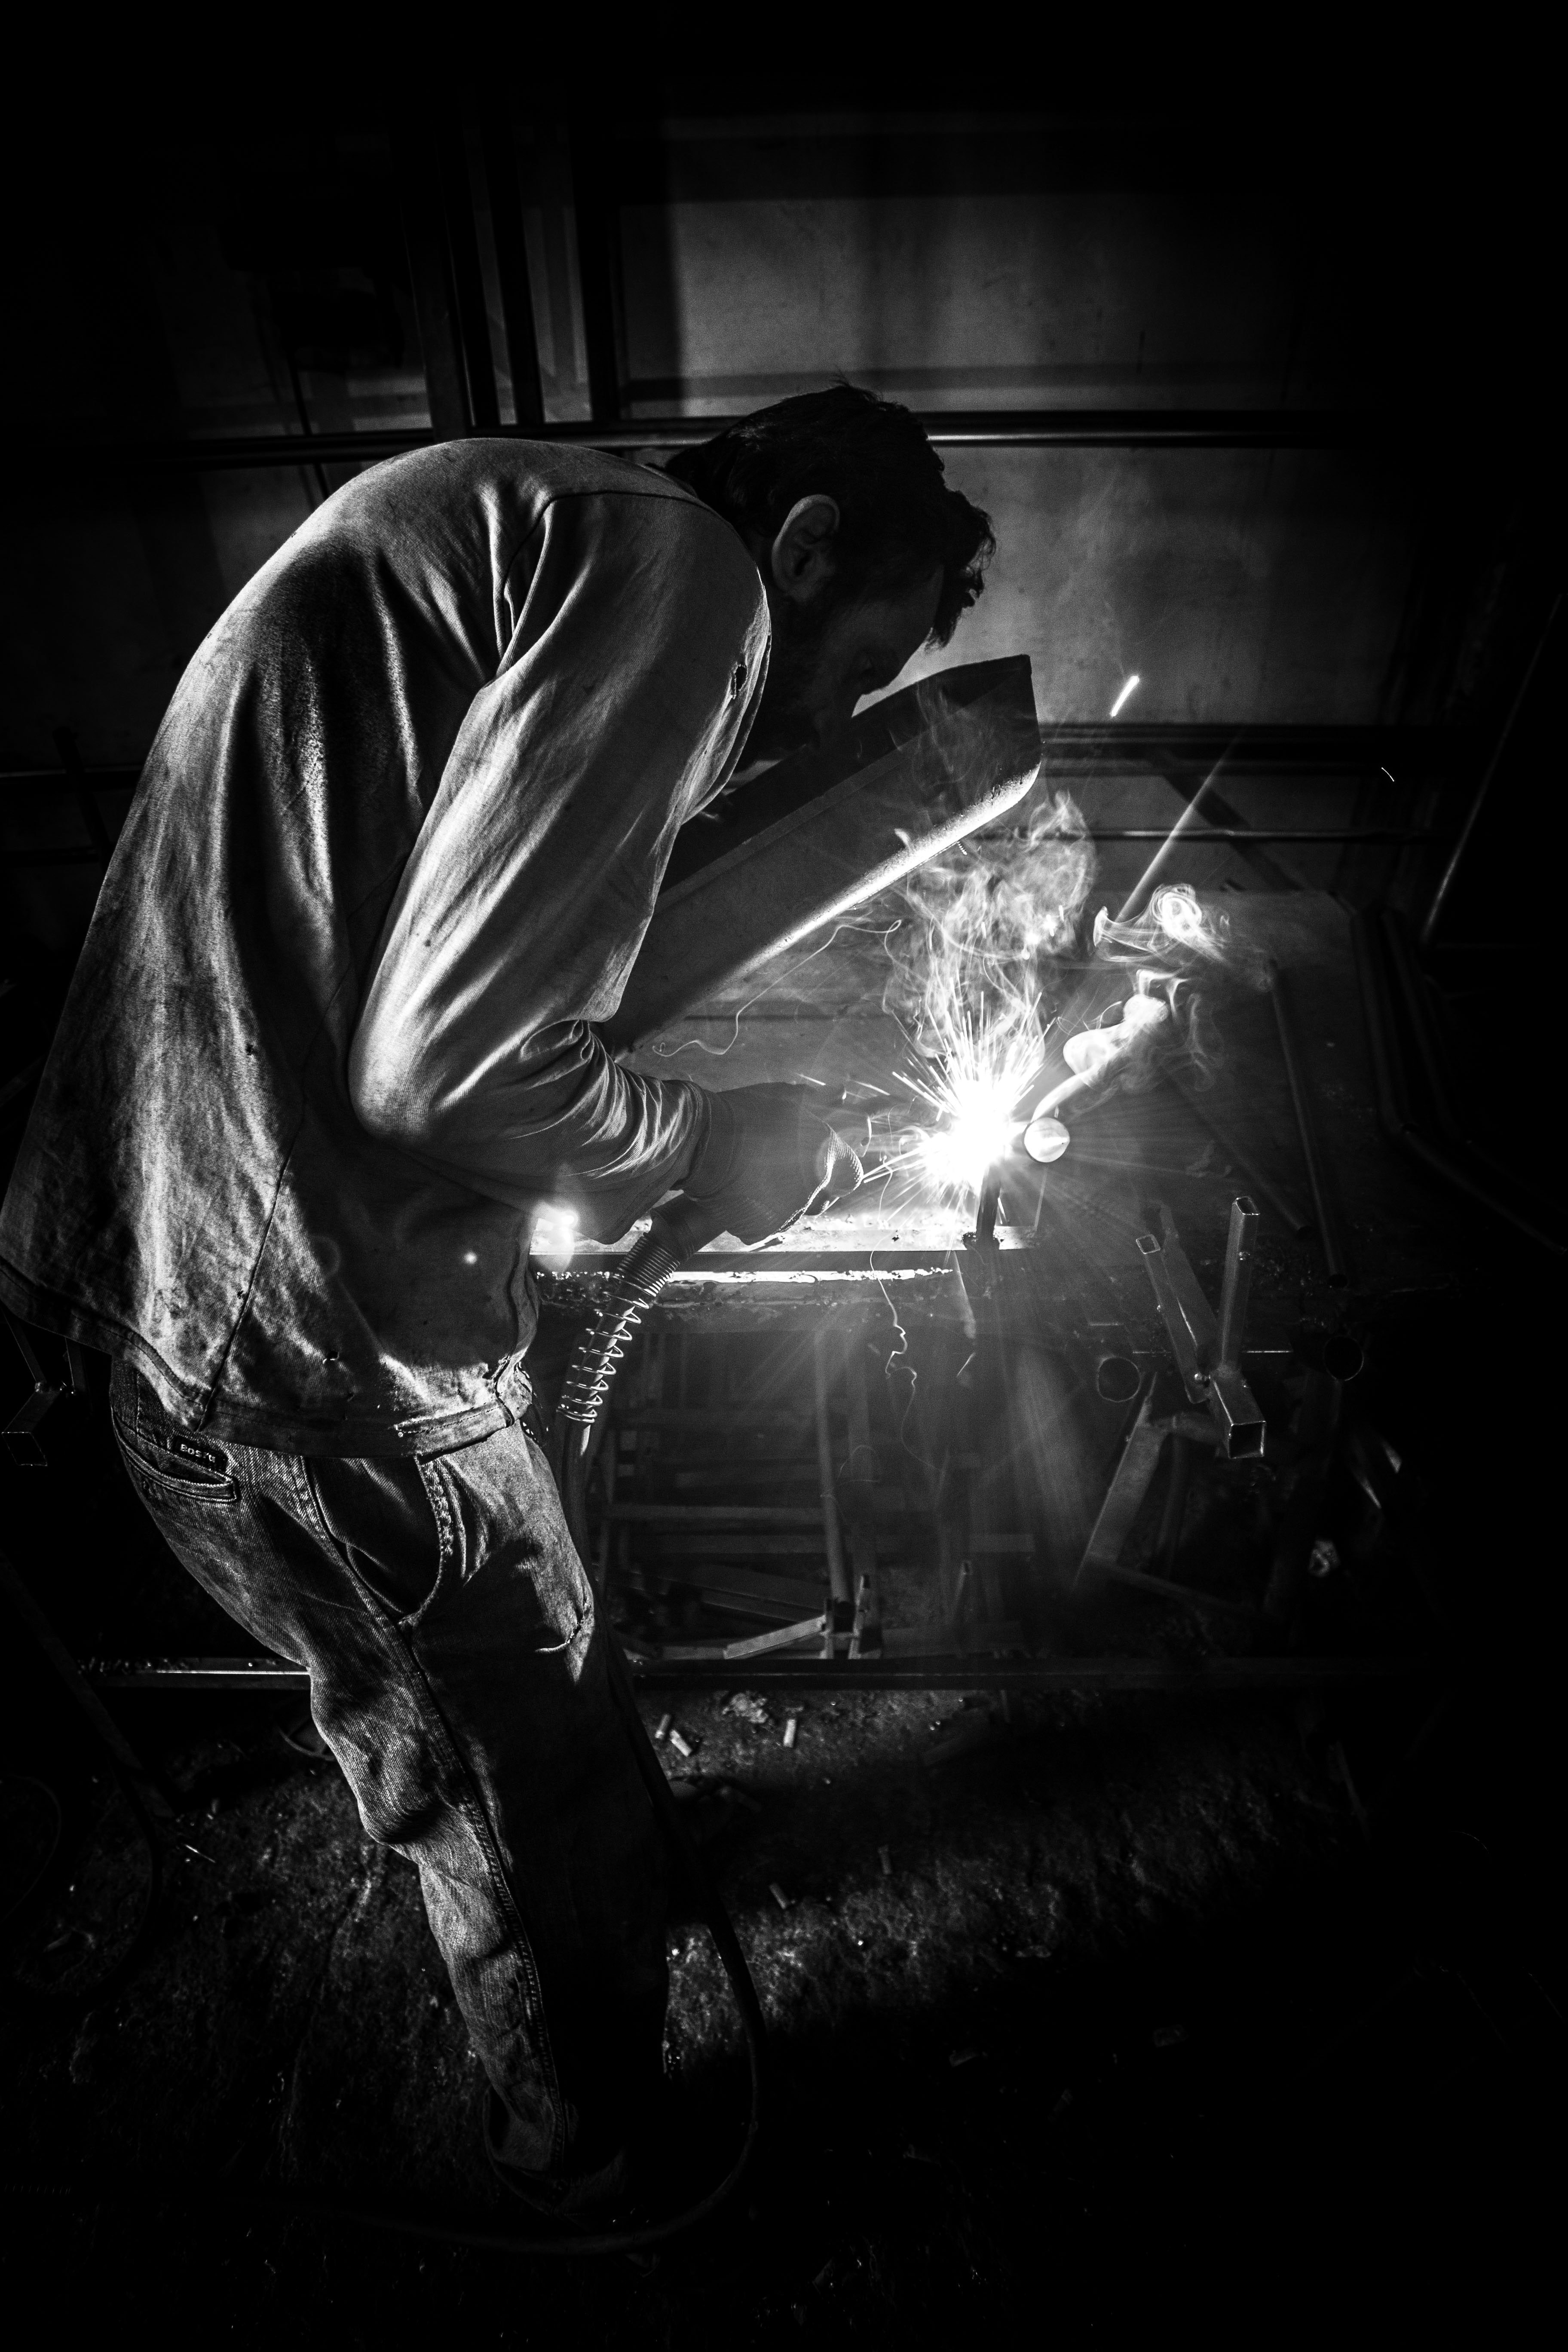 Greyscale Photo of Person Having Welding, Adult, Man, Work area, Work, HQ Photo